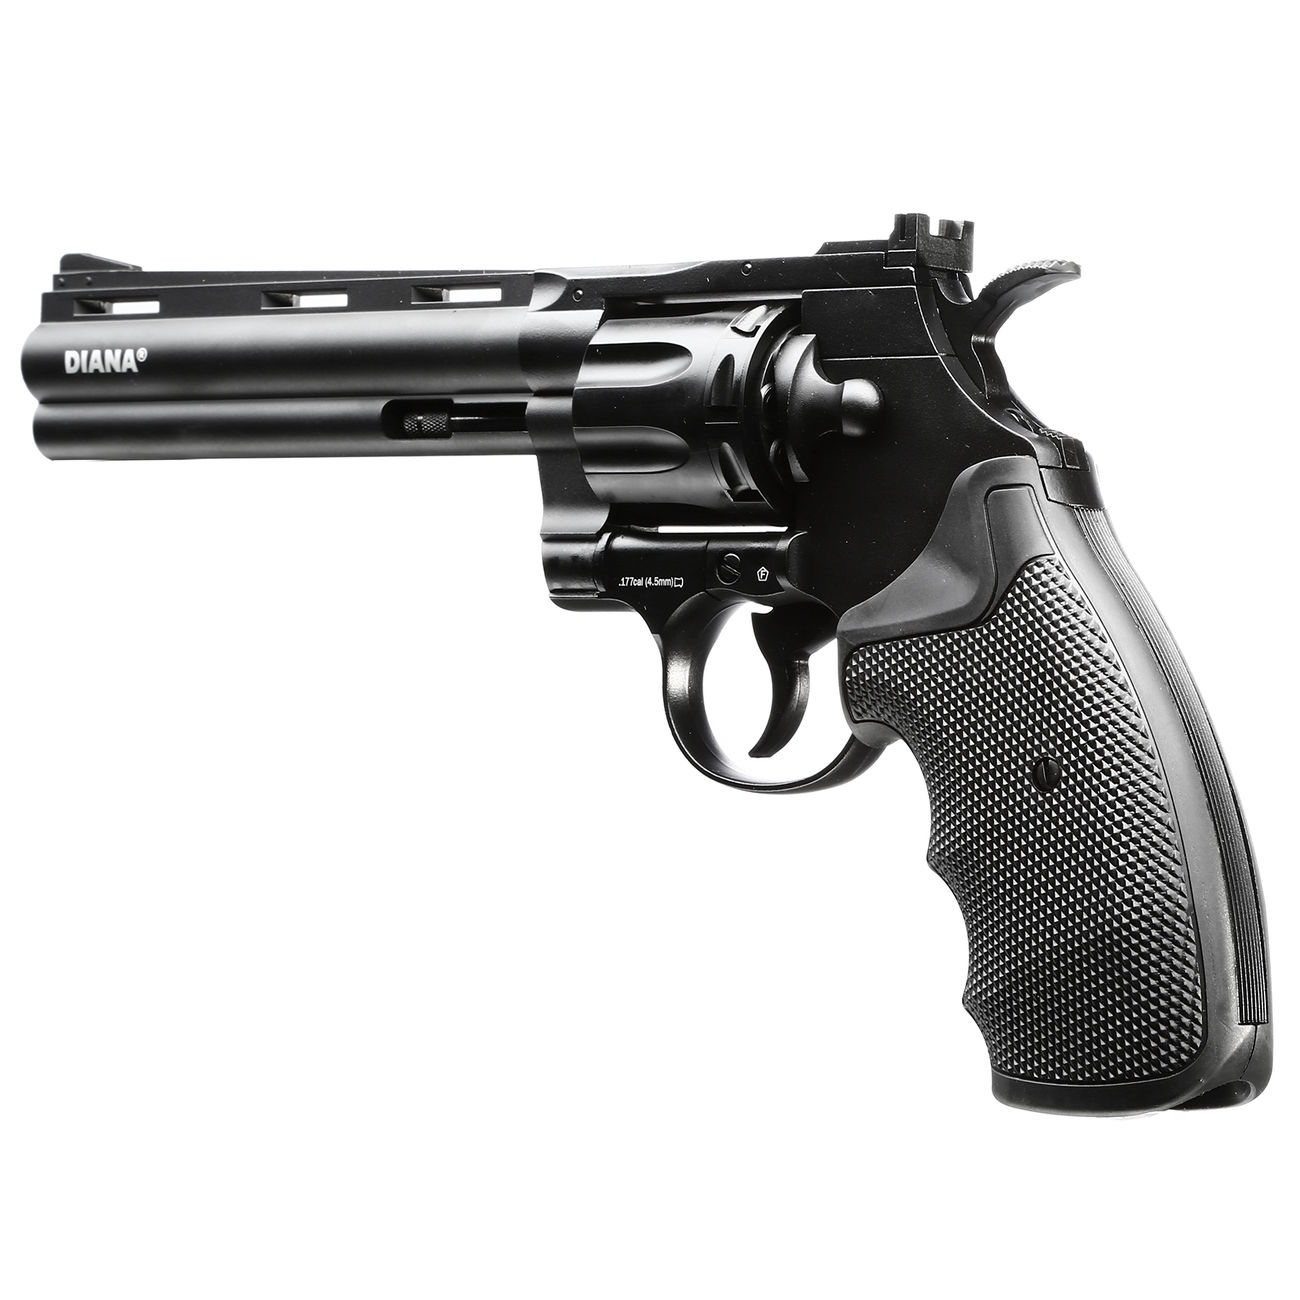 Diana Raptor 6 CO2 Revolver Kal. 4,5mm Diabolo 2